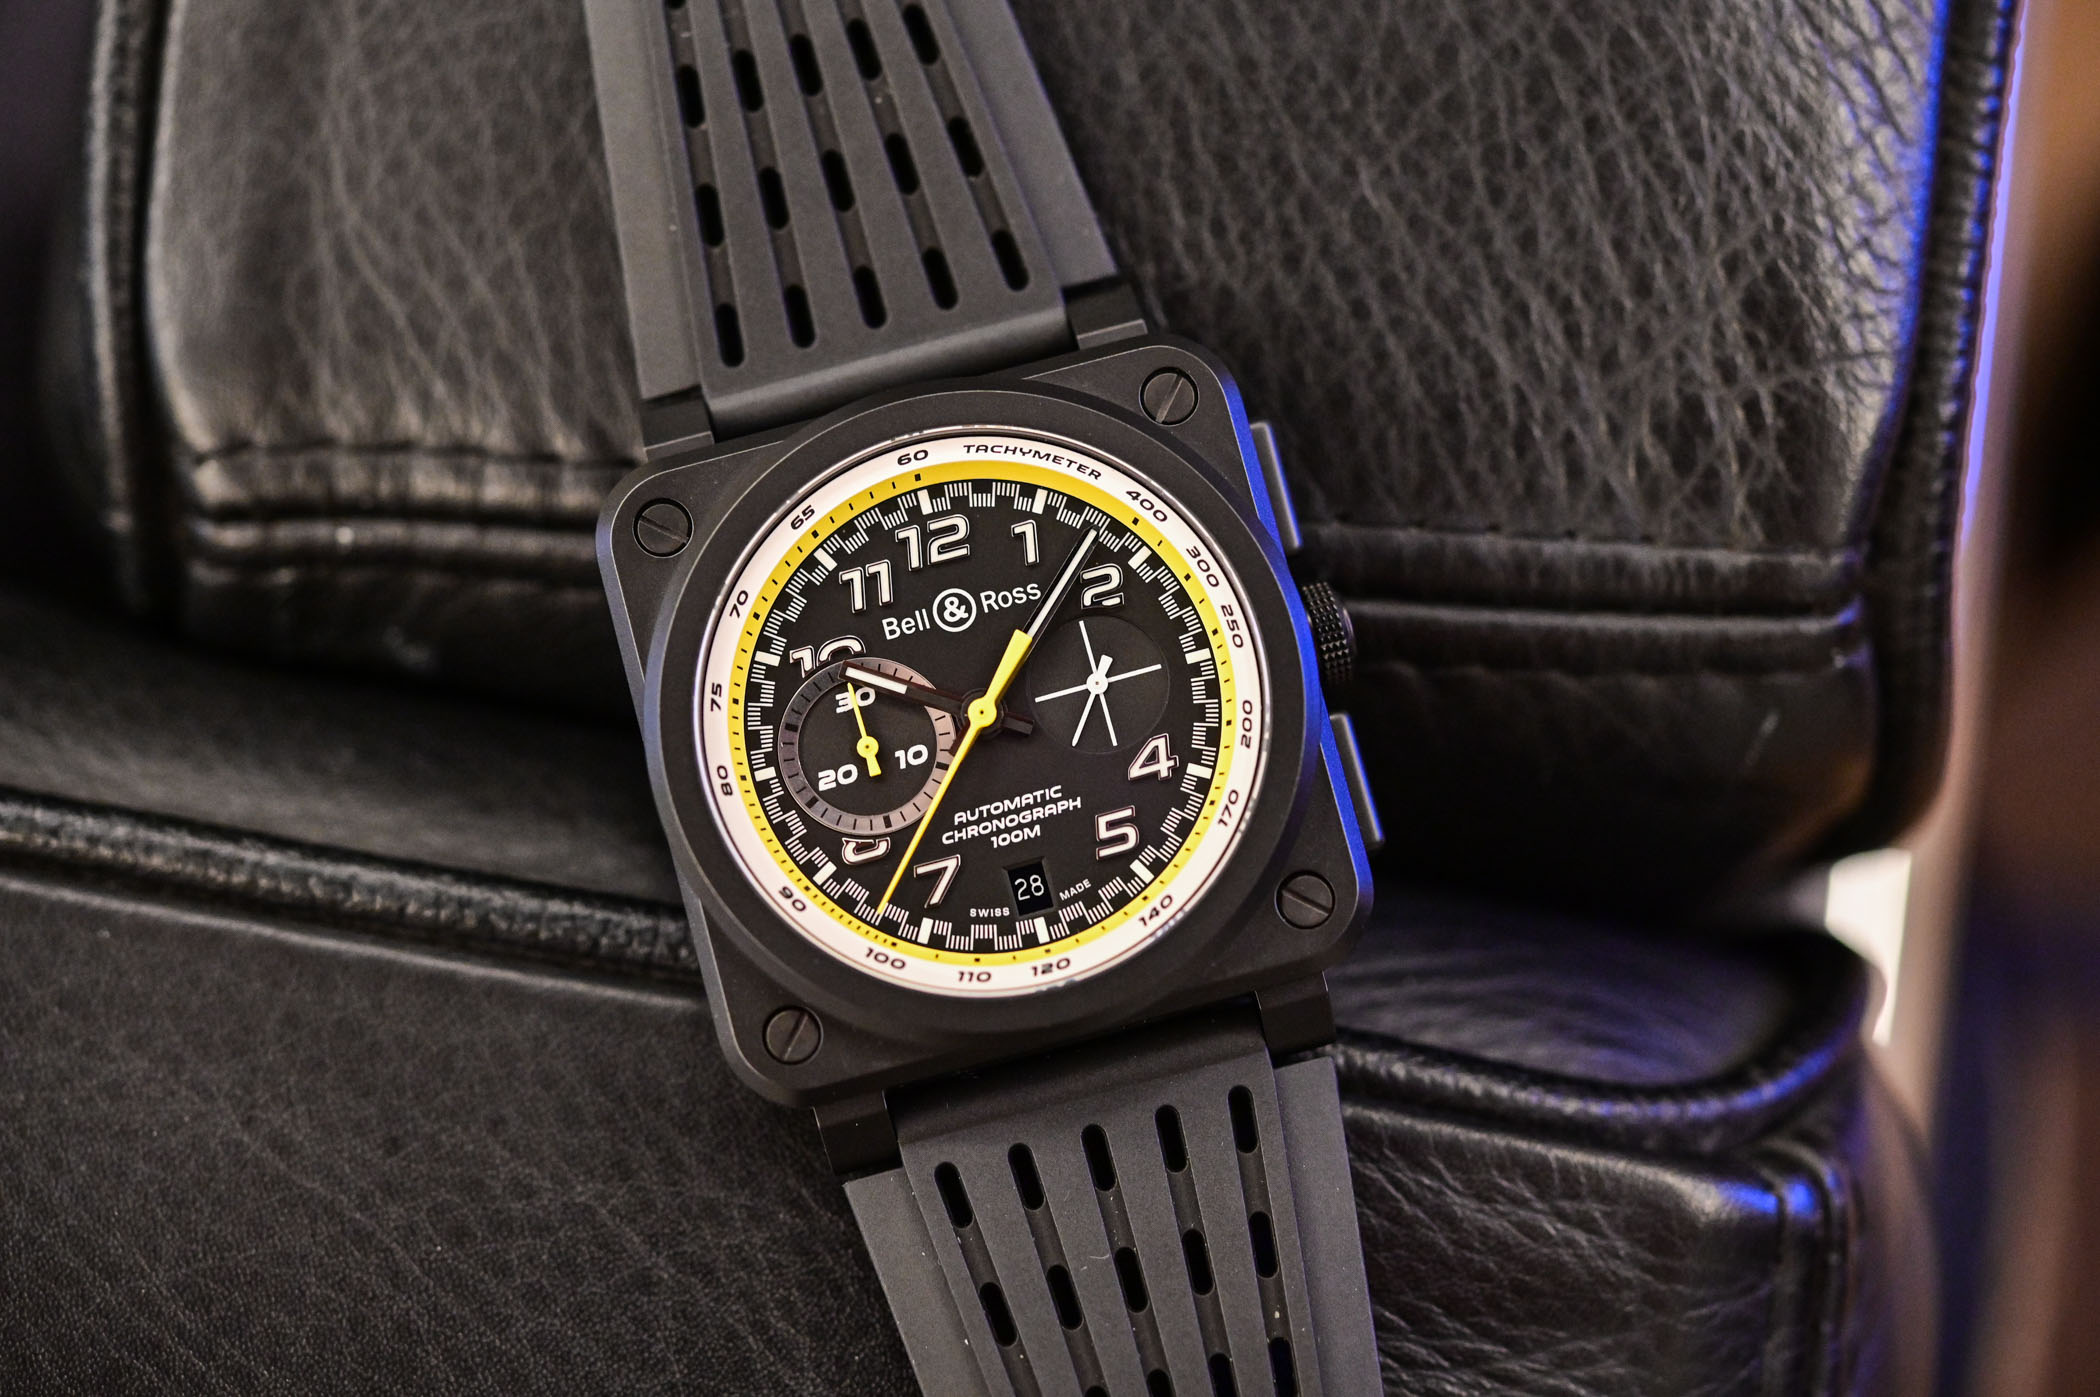 Bell & Ross BR 03-94 R.S.20 Renault F1 Chronograph